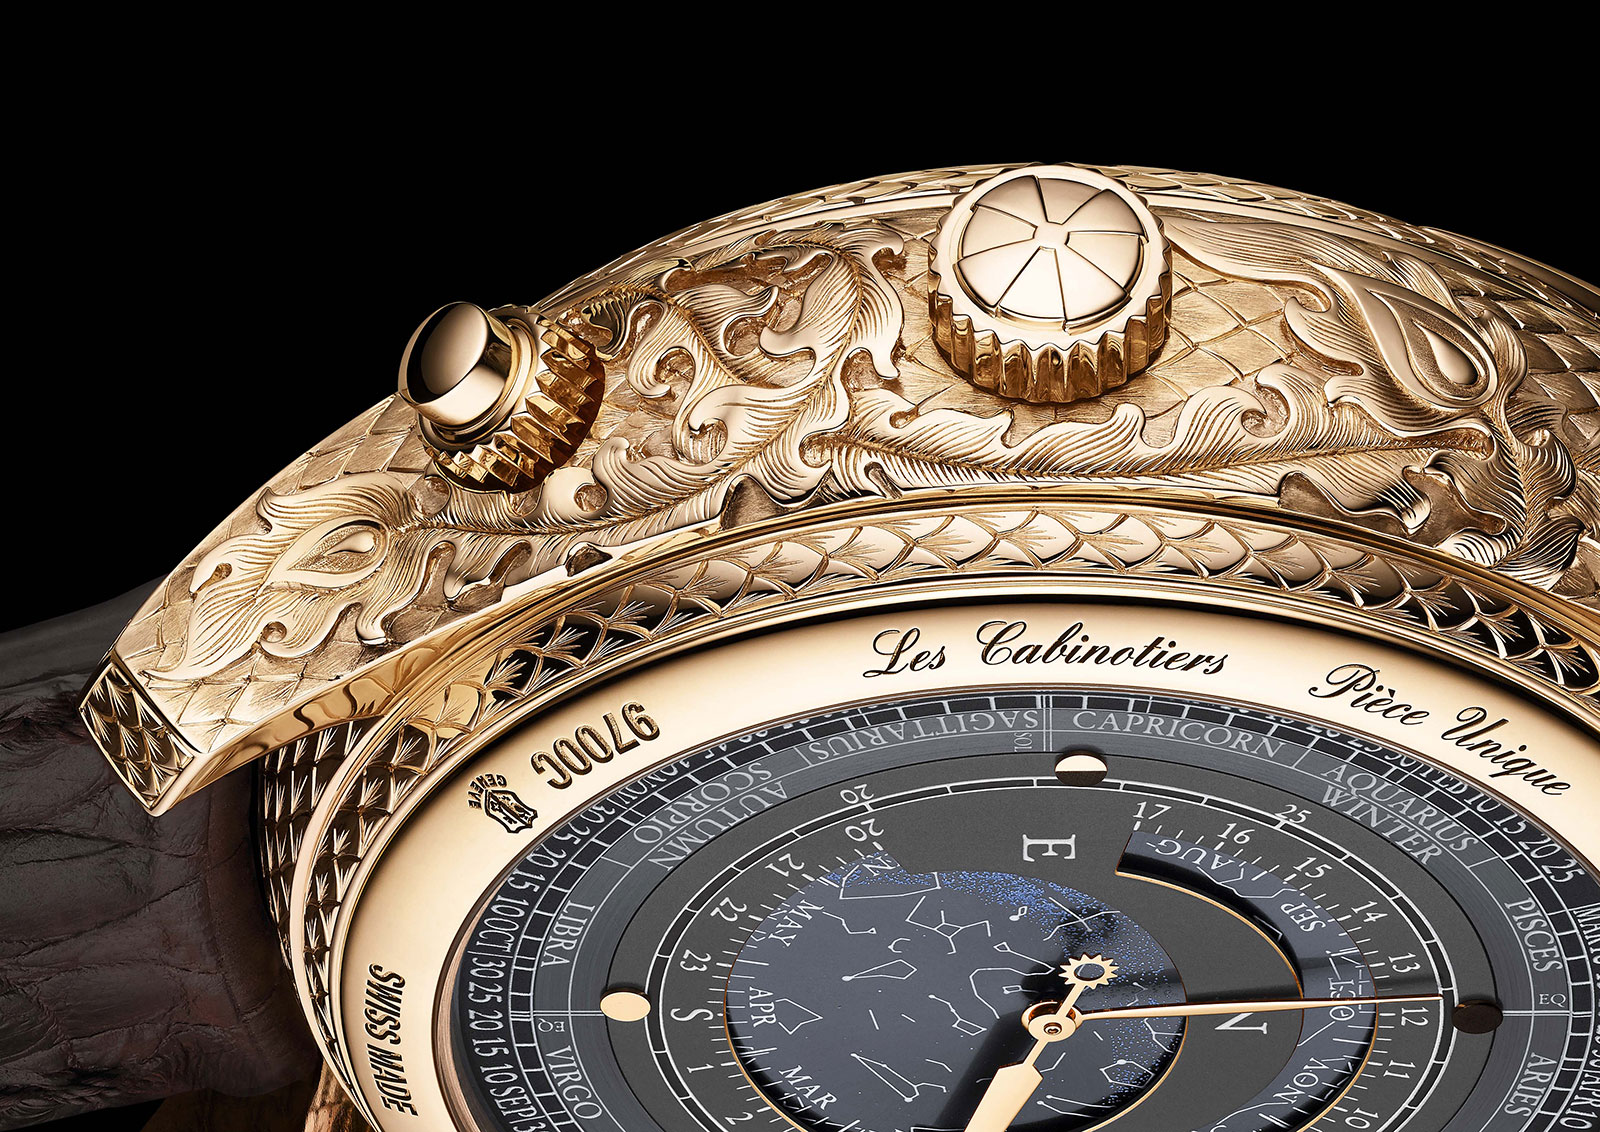 Vacheron Constantin Cabinotiers Grand Complication Phoenix 2